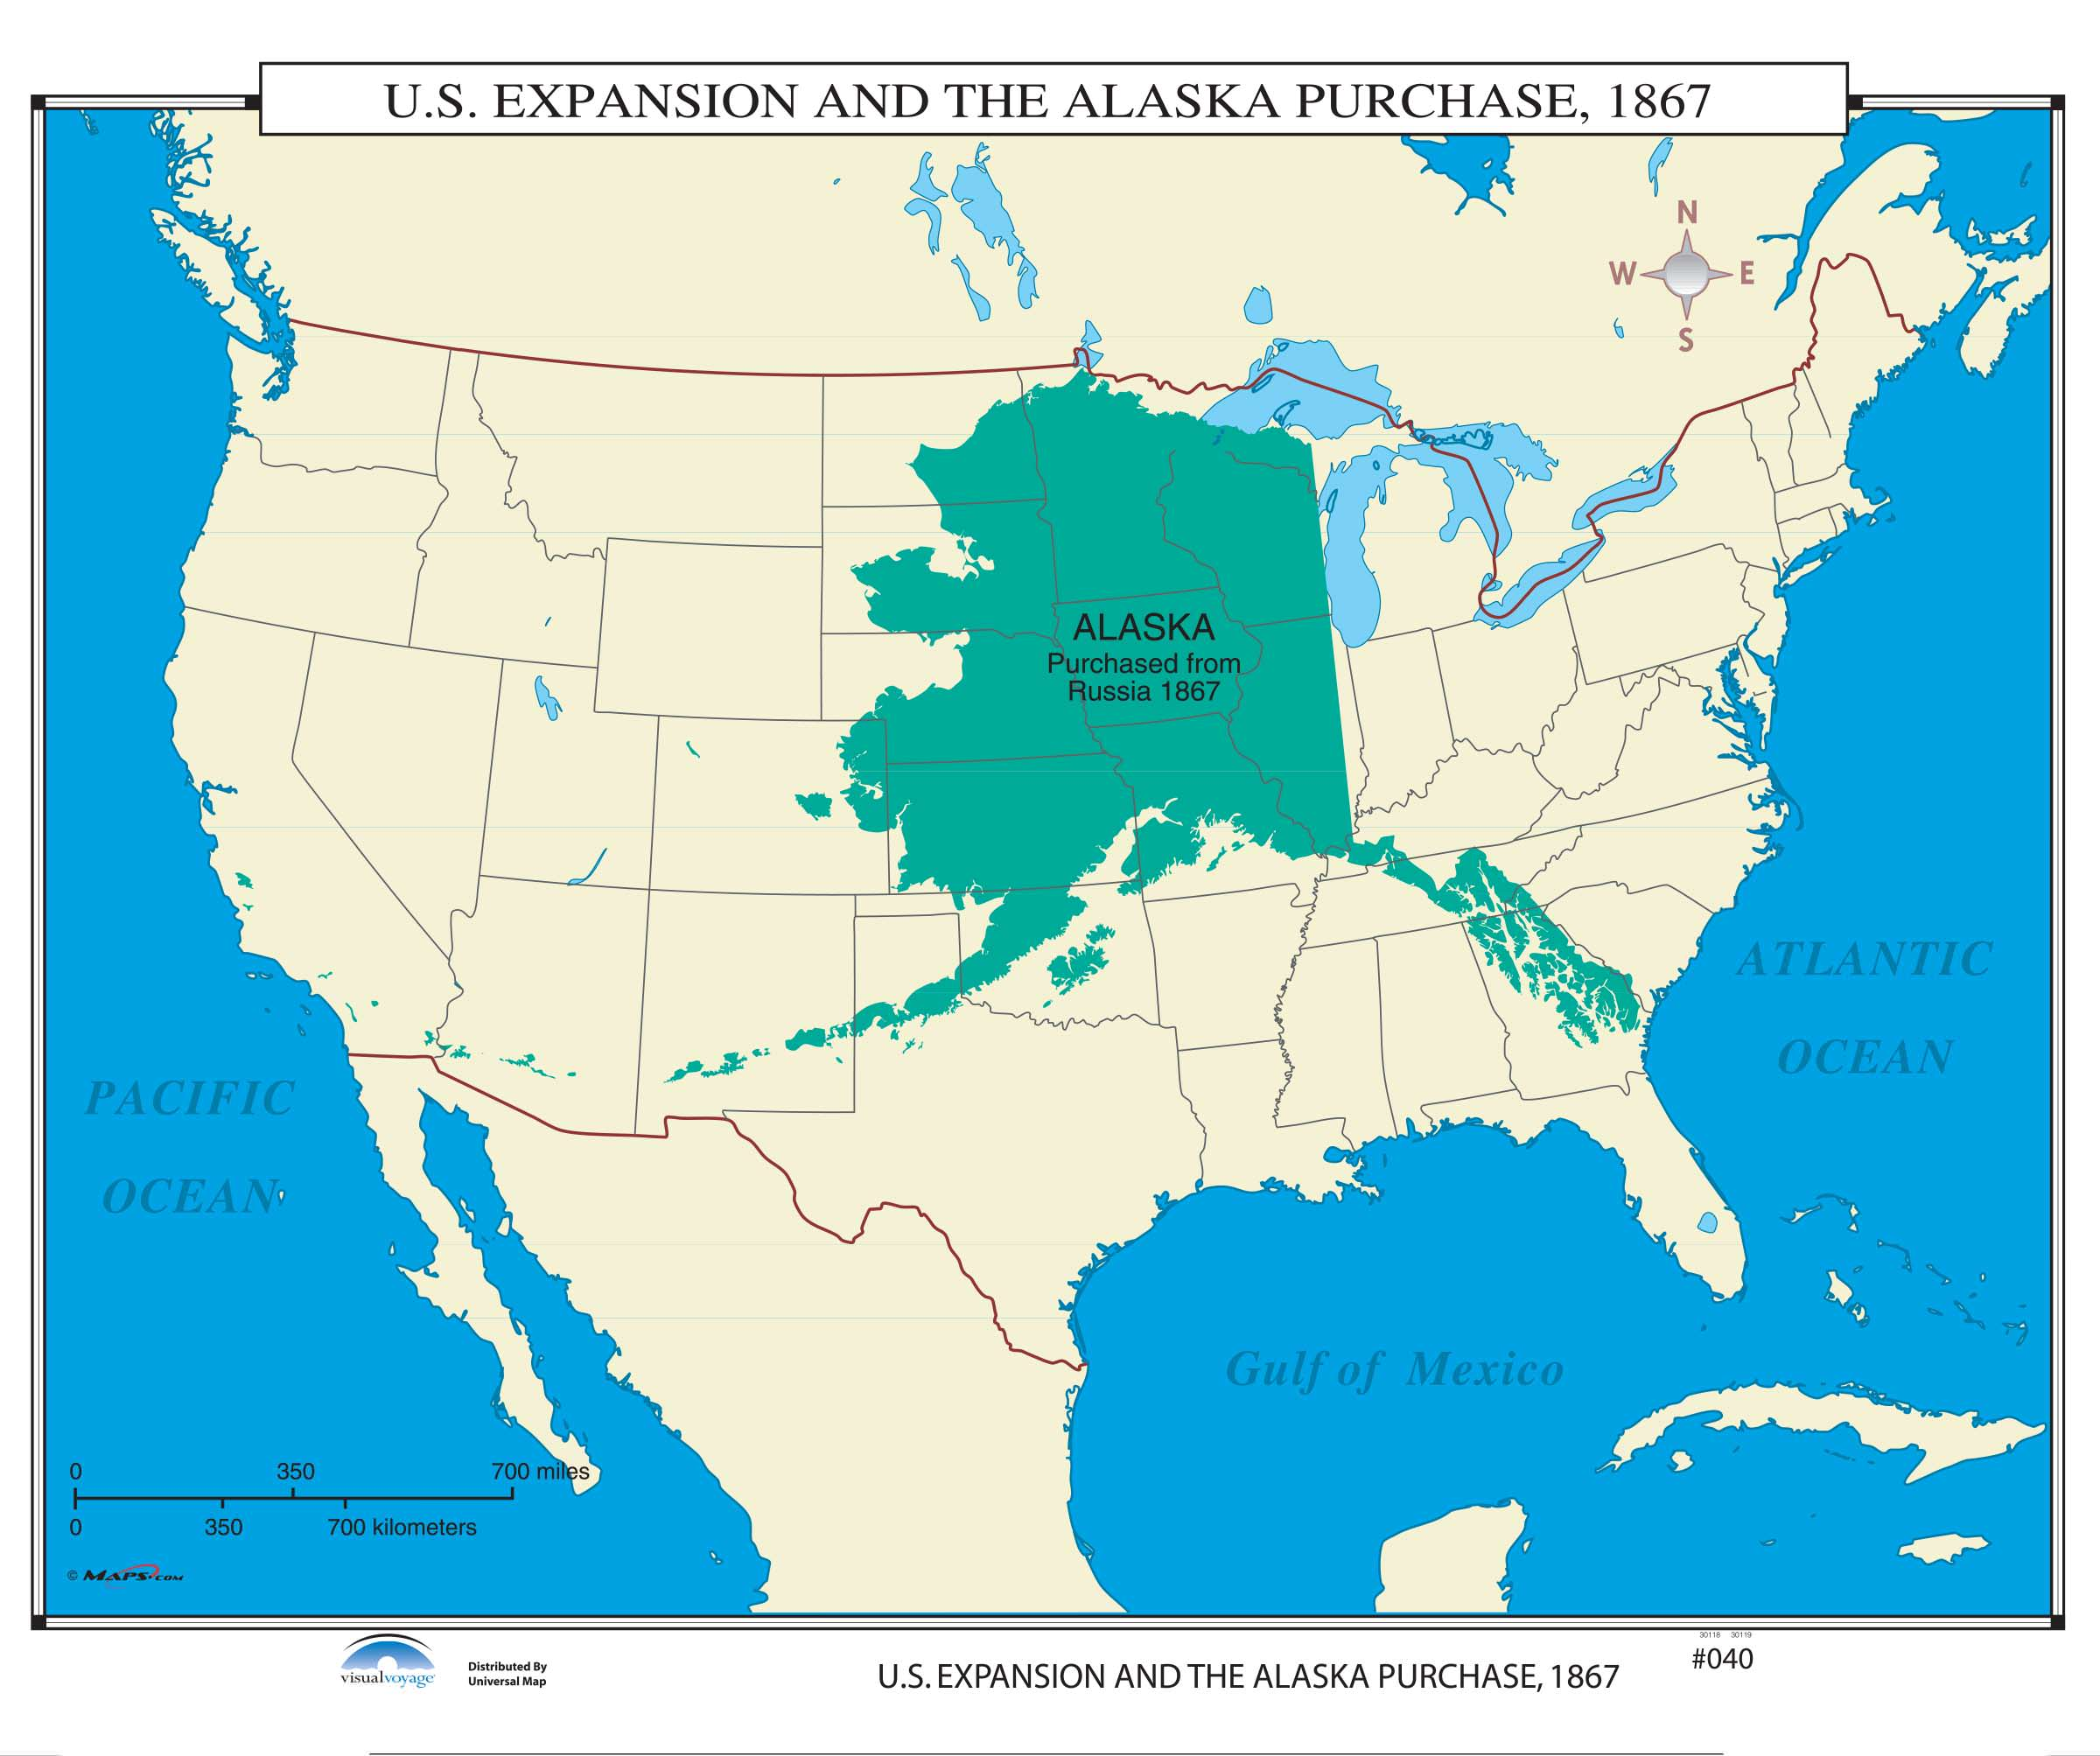 040 US Expansion the Alaska Purchase 1867 KAPPA MAP GROUP